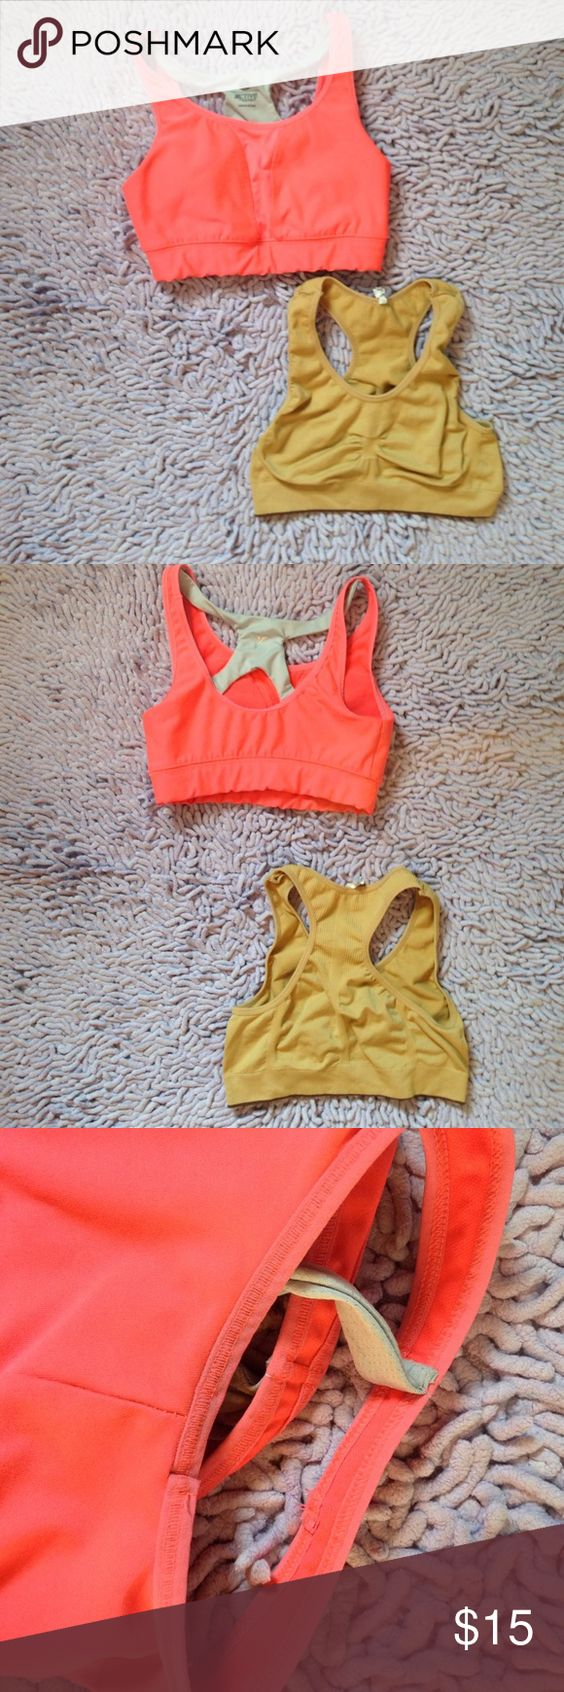 Pink & nude sports bra Tan-NWOT bought off of groupon one size fits all pink-gently used slight signs of wear and tear under the armpits XS bought from old Navy Old Navy Intimates & Sleepwear Bras